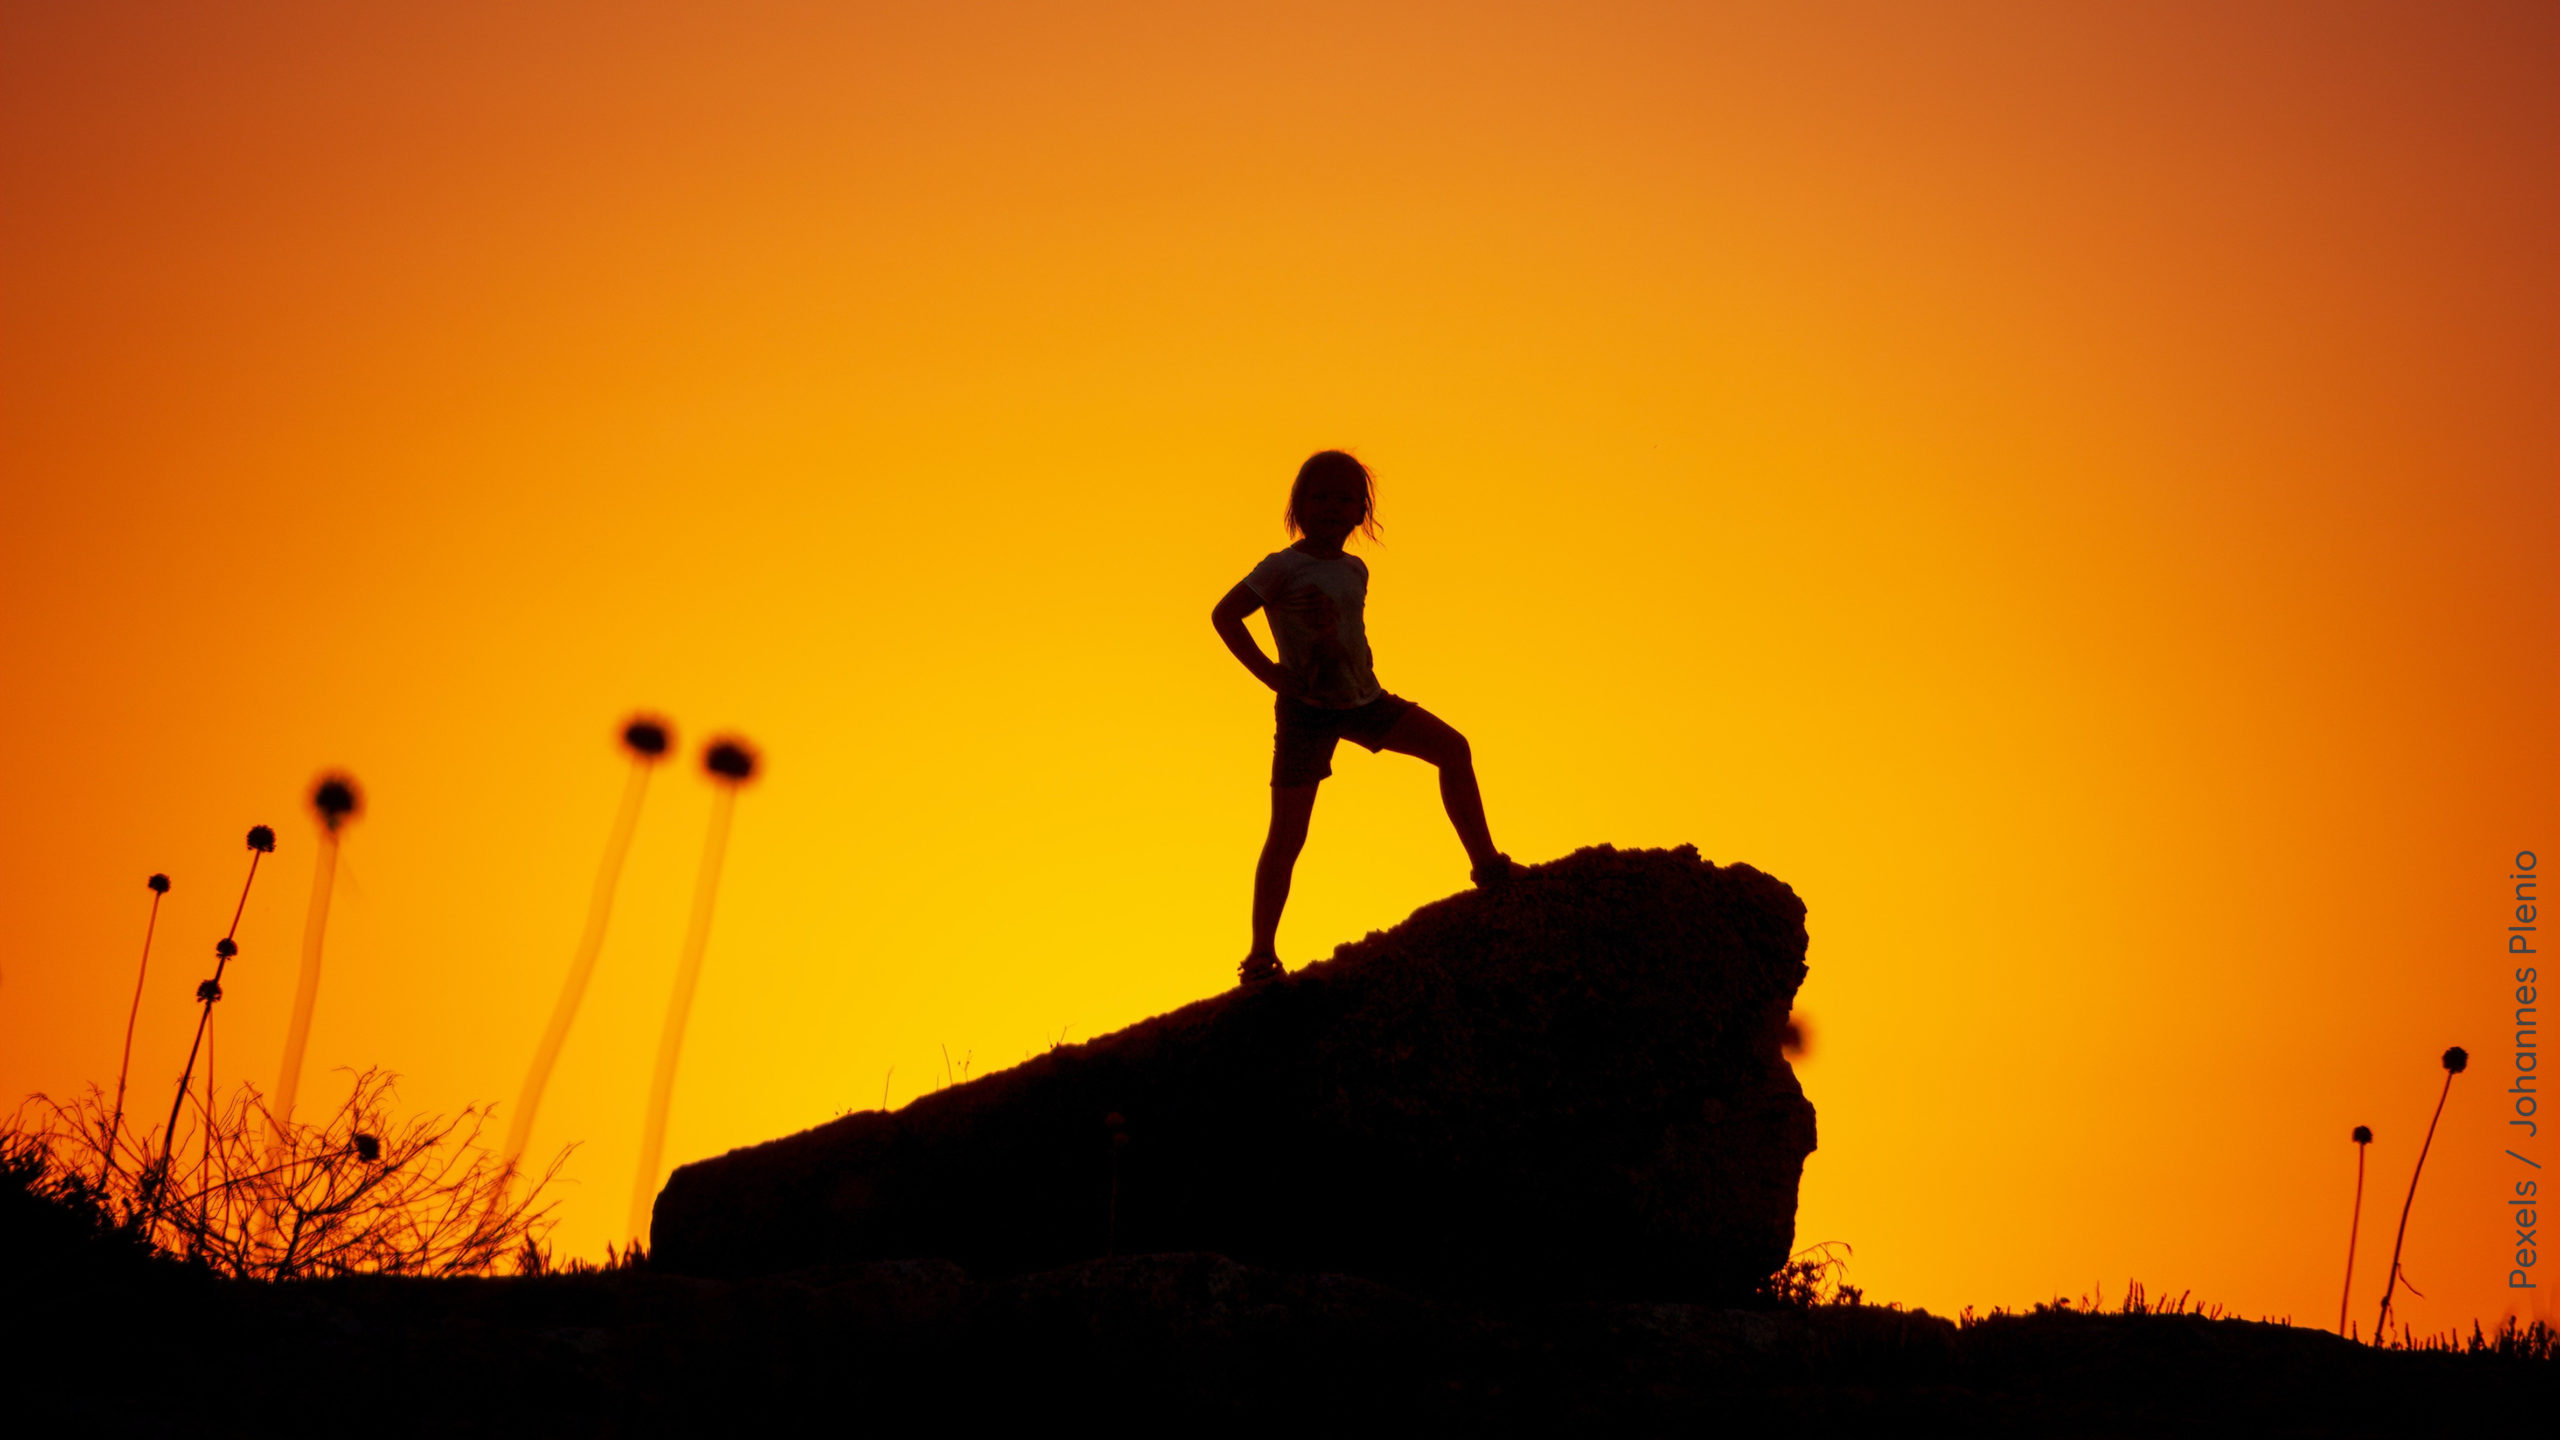 Kind auf Felsen silhouette photography of kid